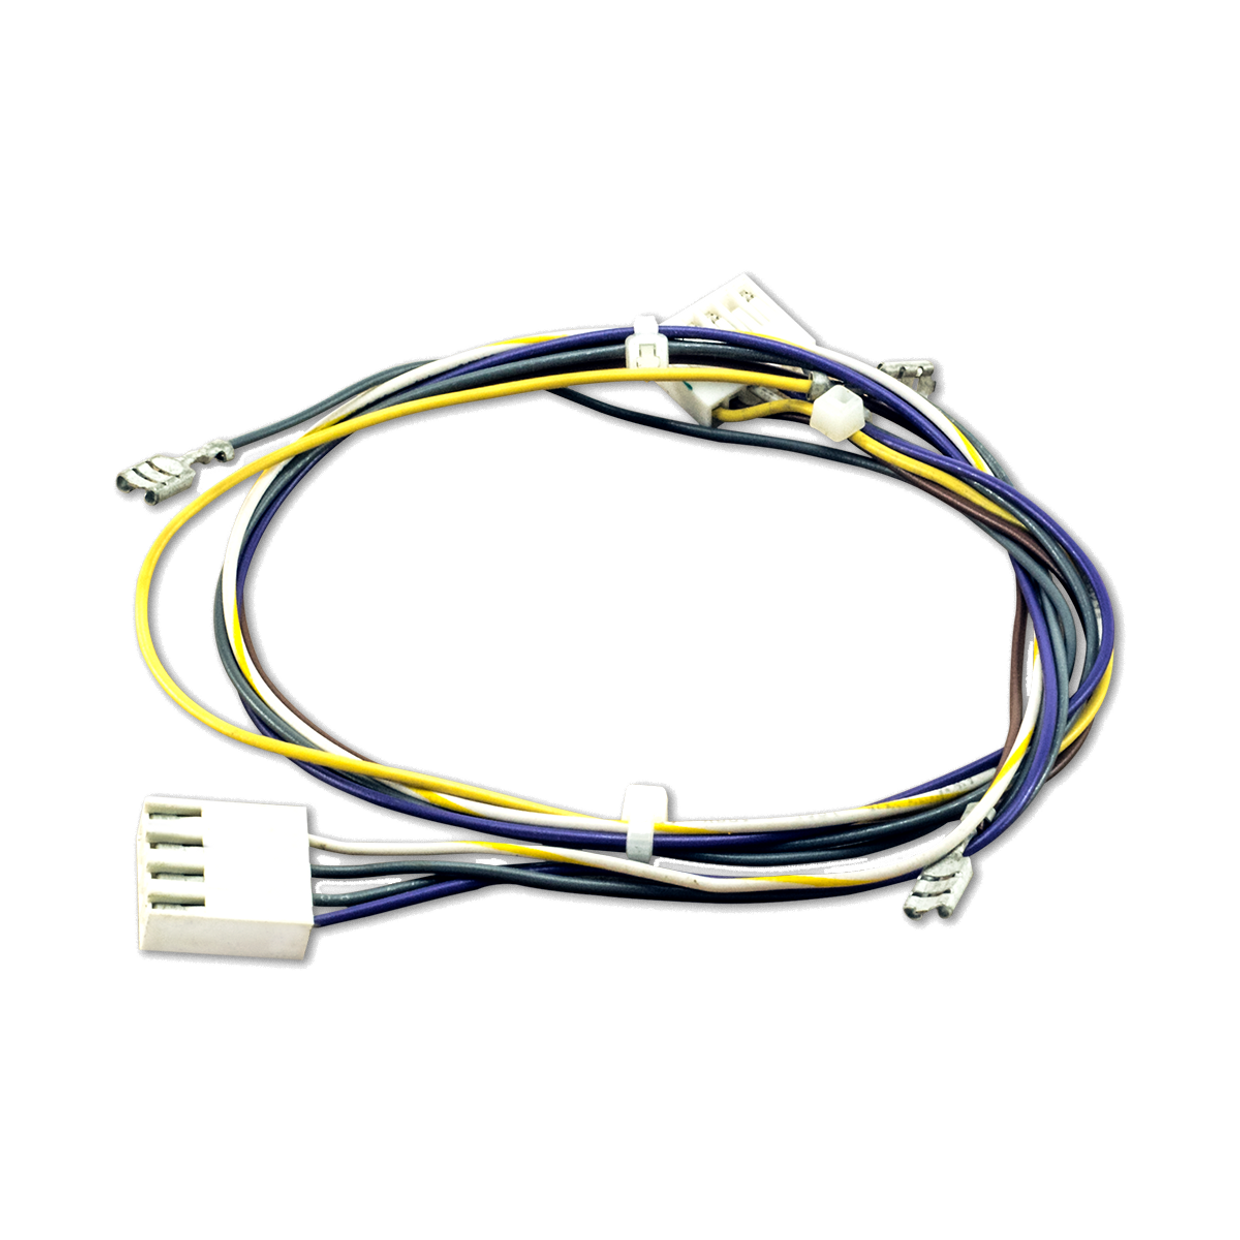 041C5548- Wire Harness Kit, Low Voltage